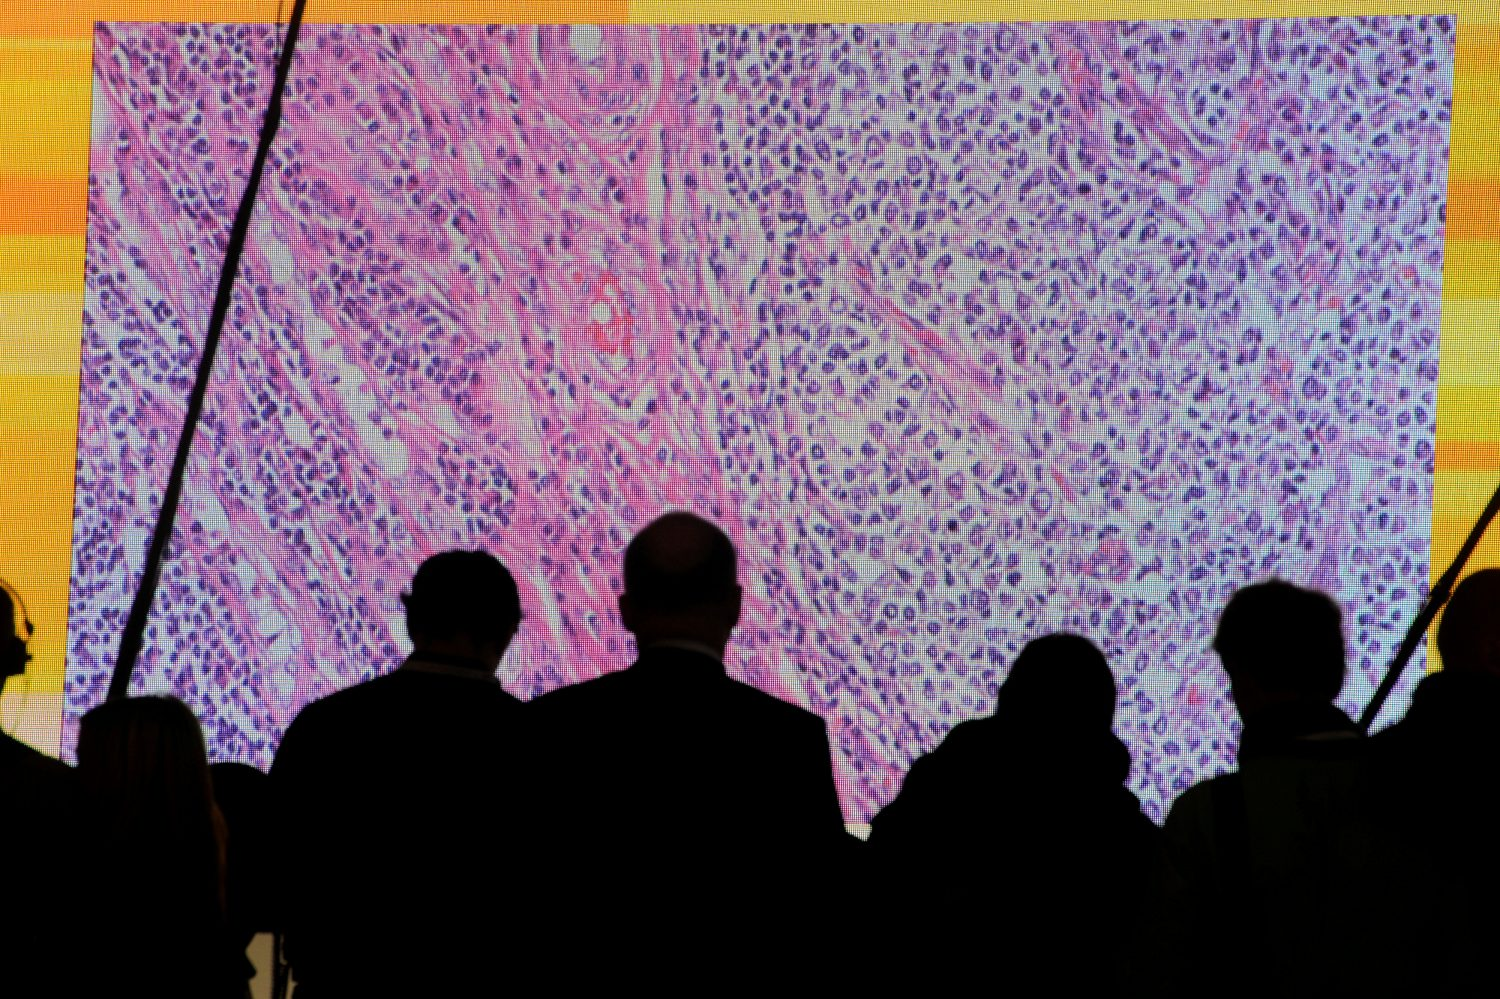 FILE PHOTO: Cancer cells are seen on a large screen connected to a microscope at the CeBit computer fair in Hanover, Germany, March, 6, 2012. REUTERS/Fabian Bimmer/File Photo